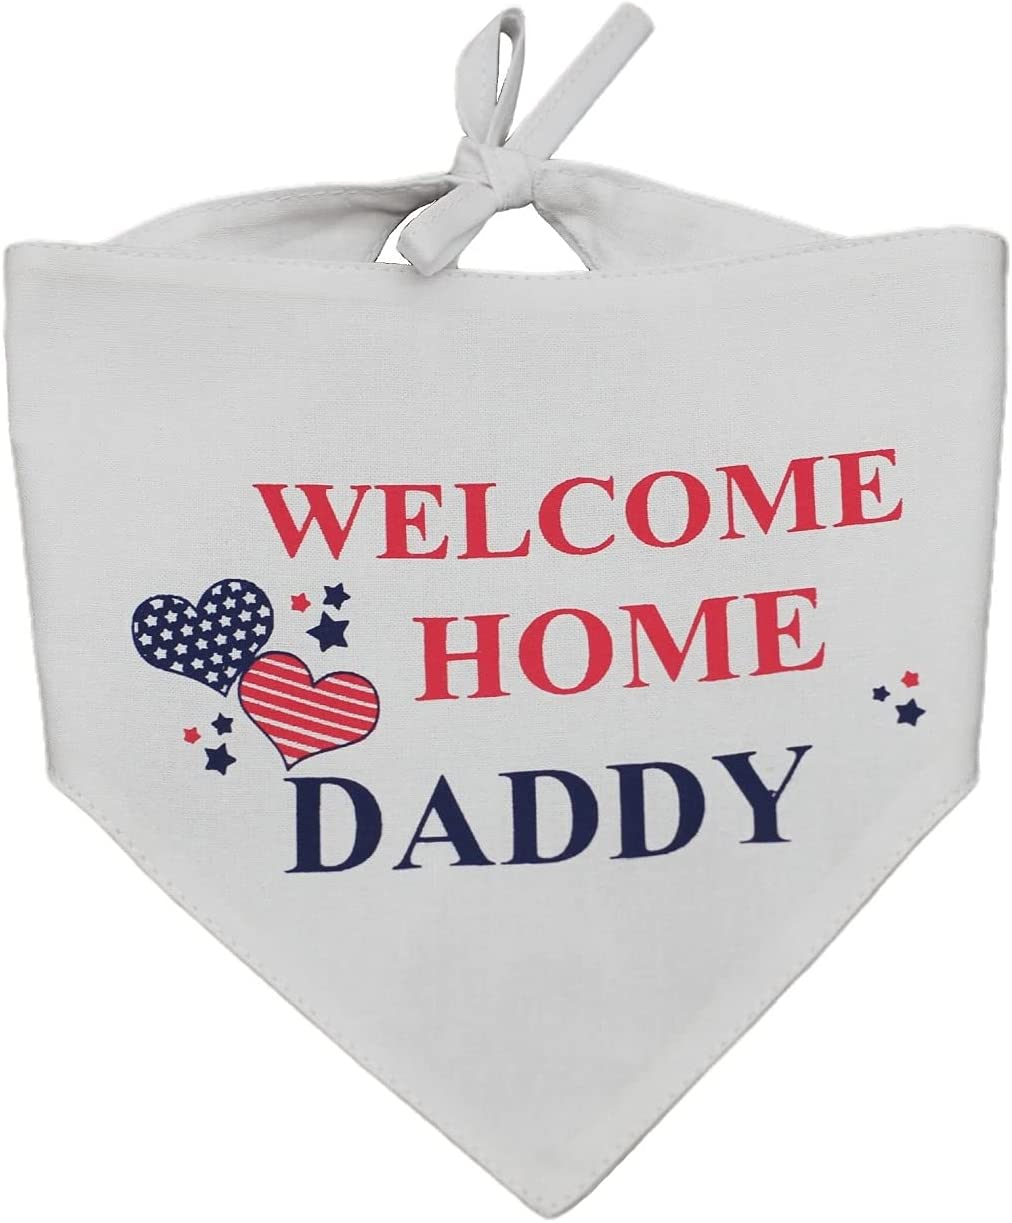 EechicSpace Welcome Home Daddy Dog Bandana Reversible Scarf Military Party Decoration Gift for Small Dogs